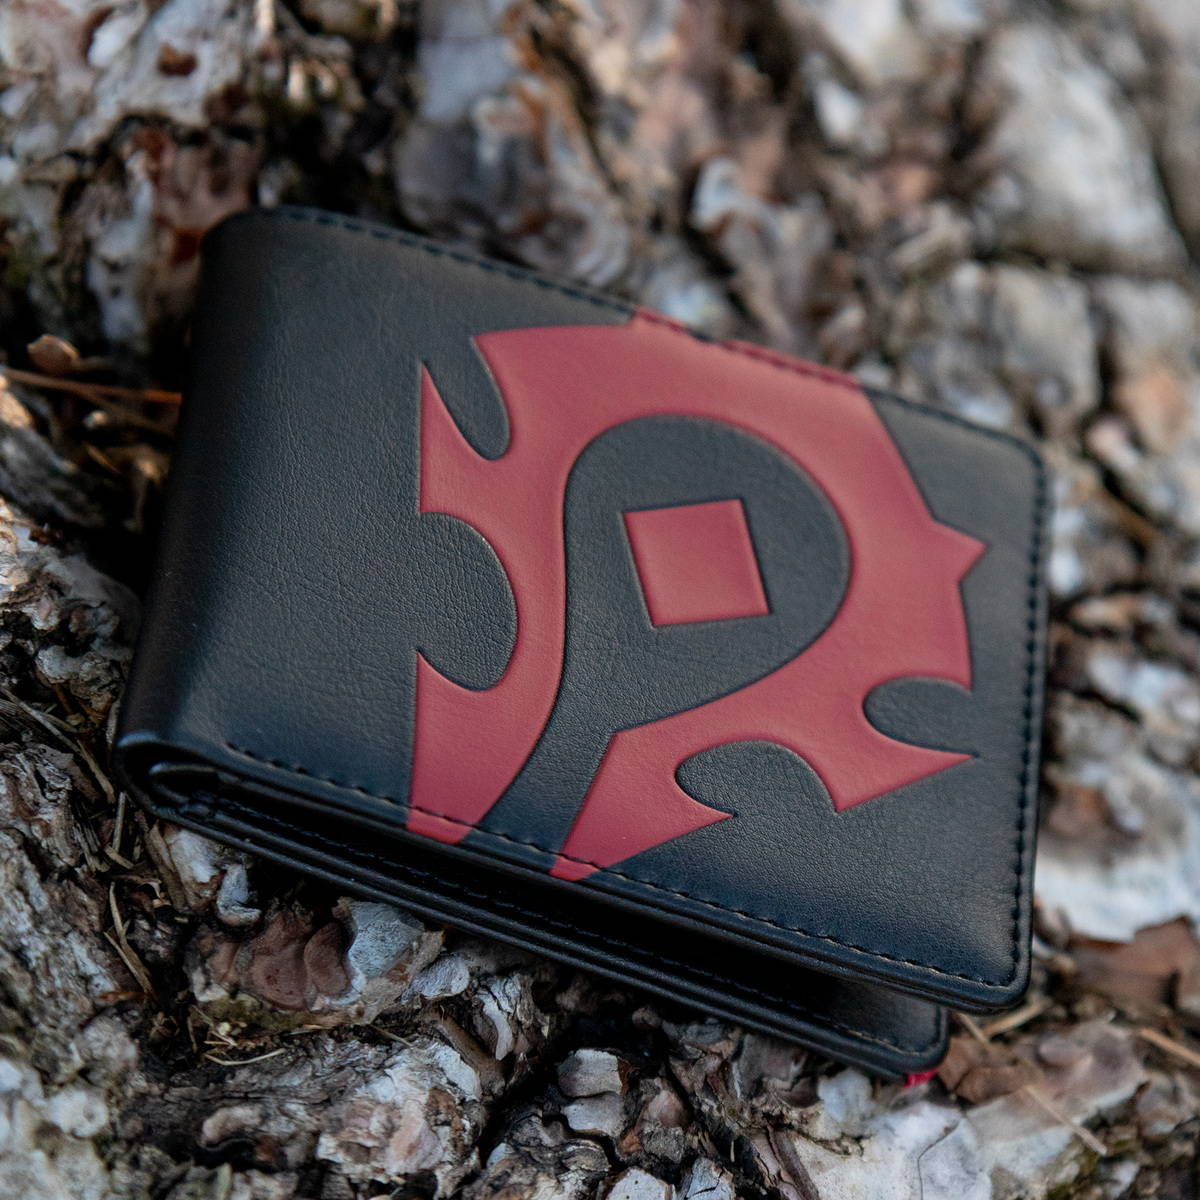 Photo of a World of Warcraft Wallet